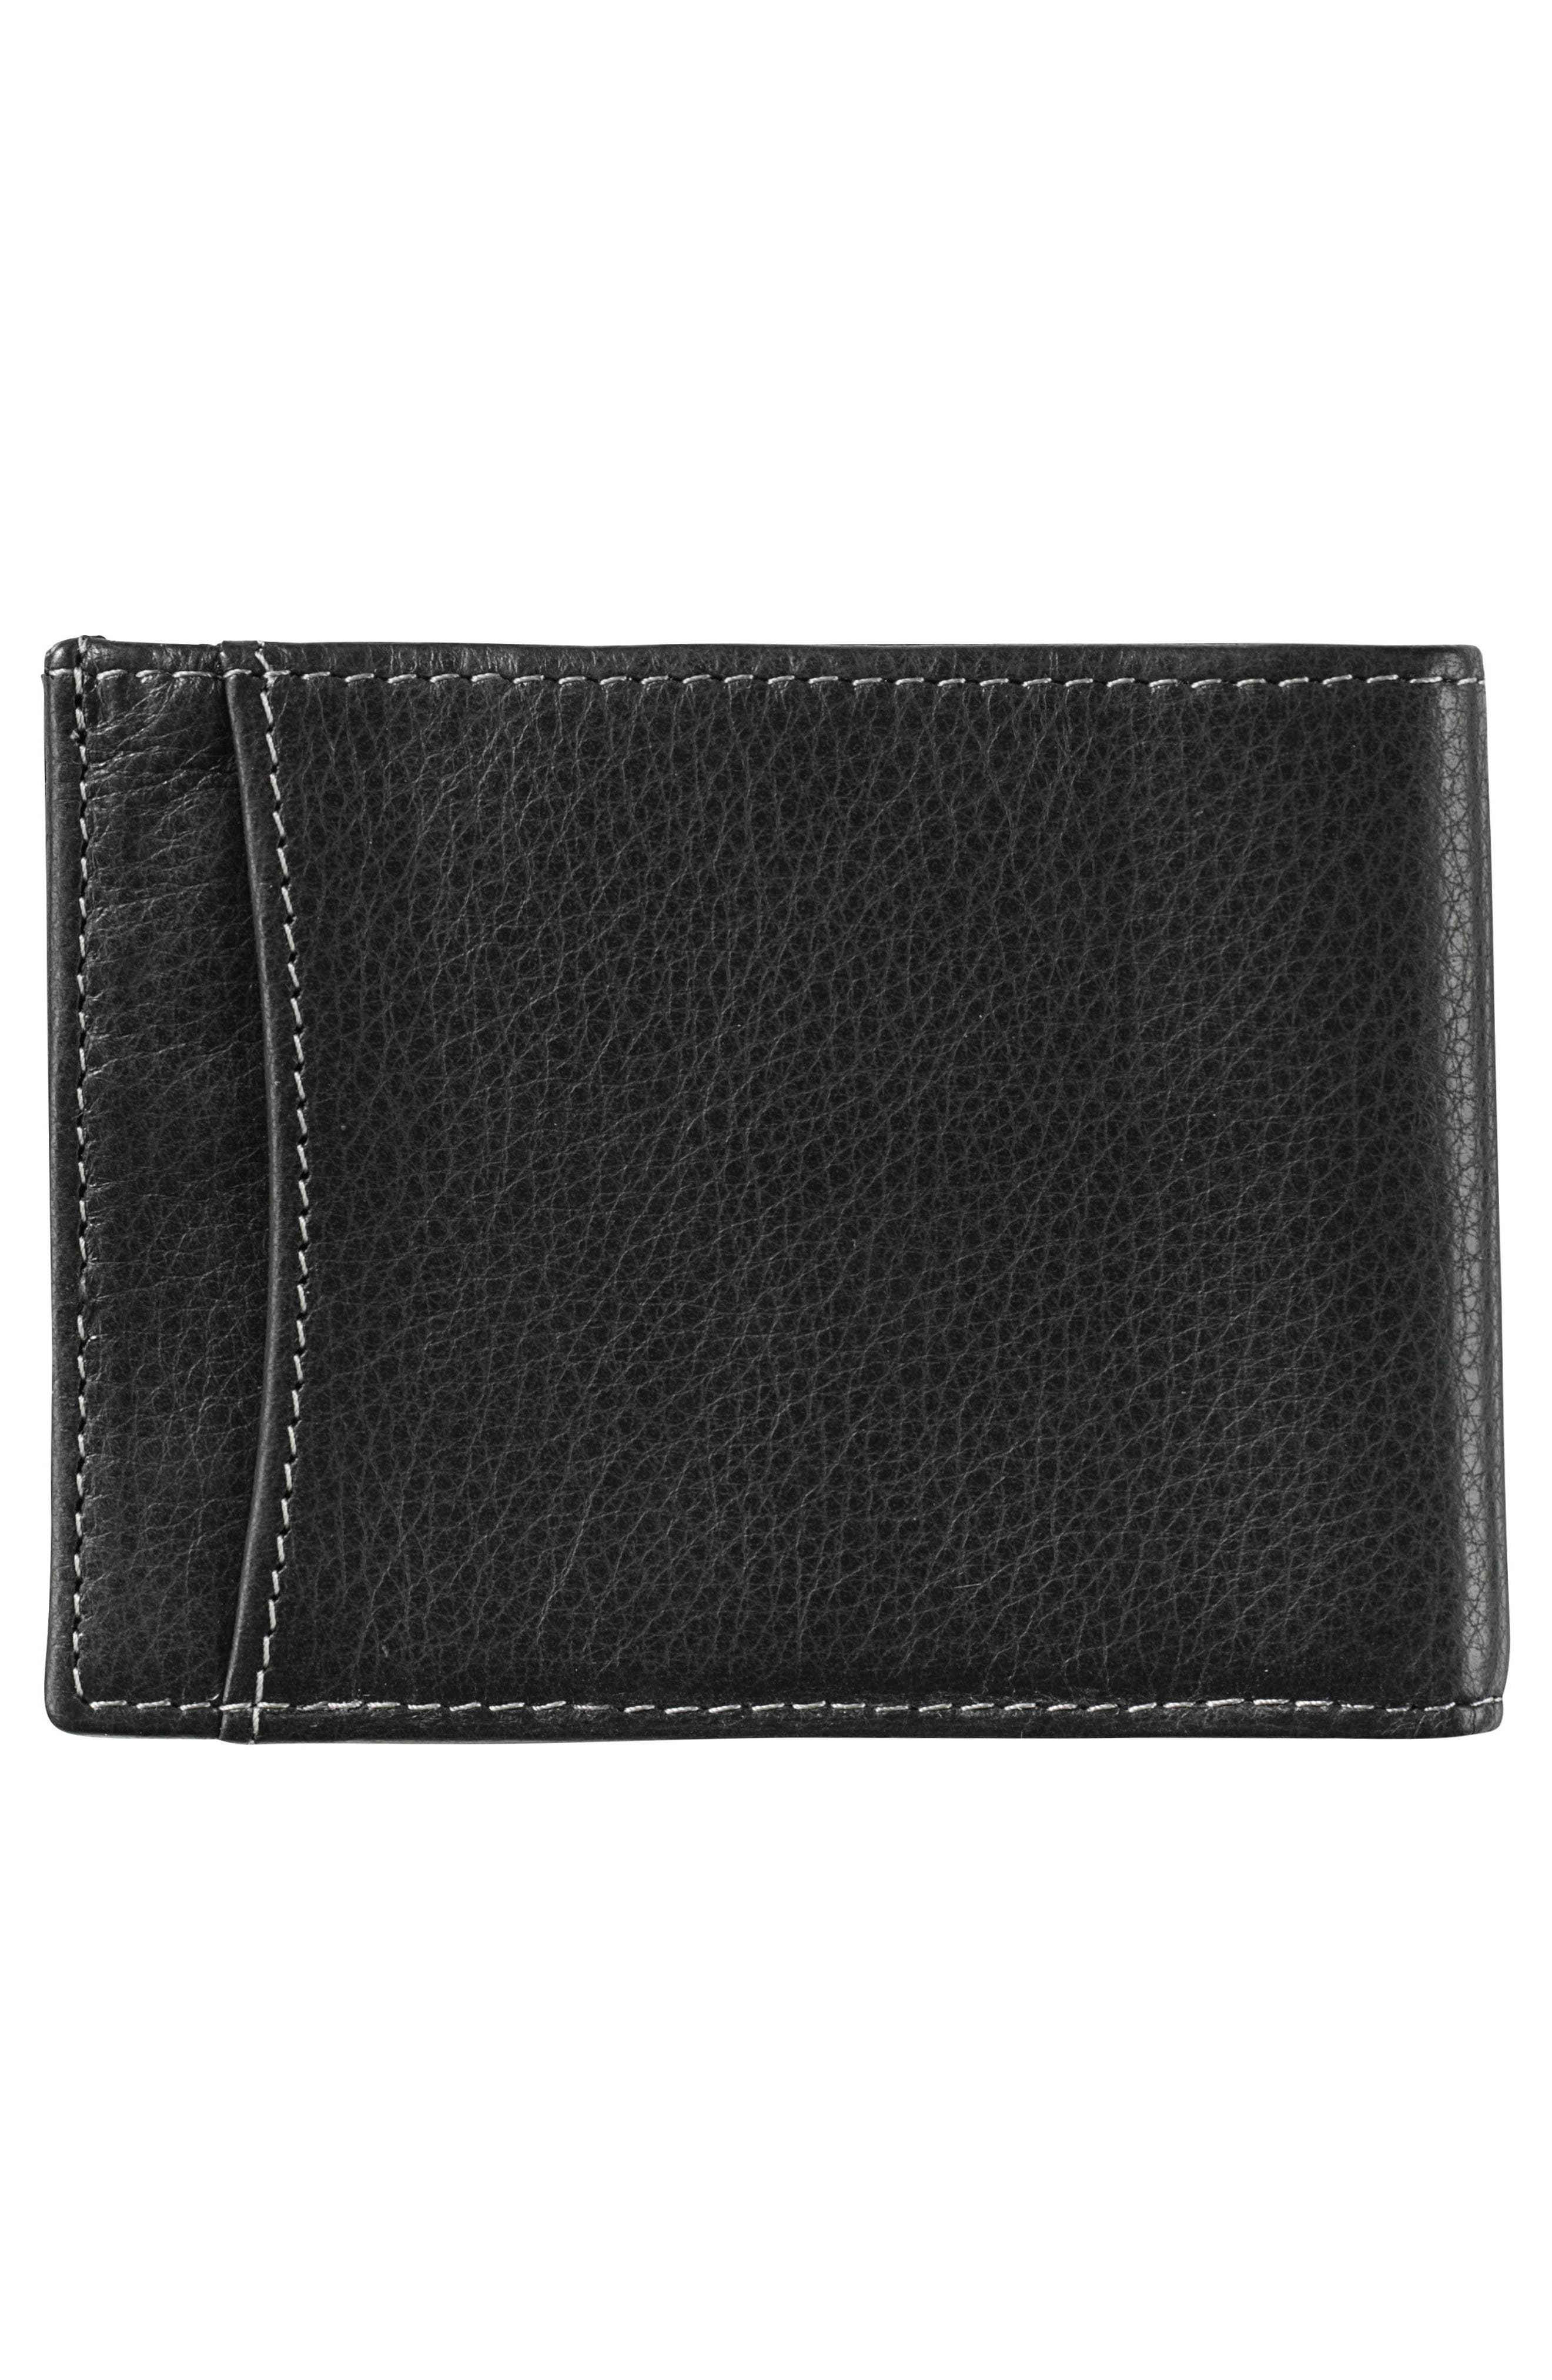 Leather Wallet,                             Alternate thumbnail 3, color,                             BLACK